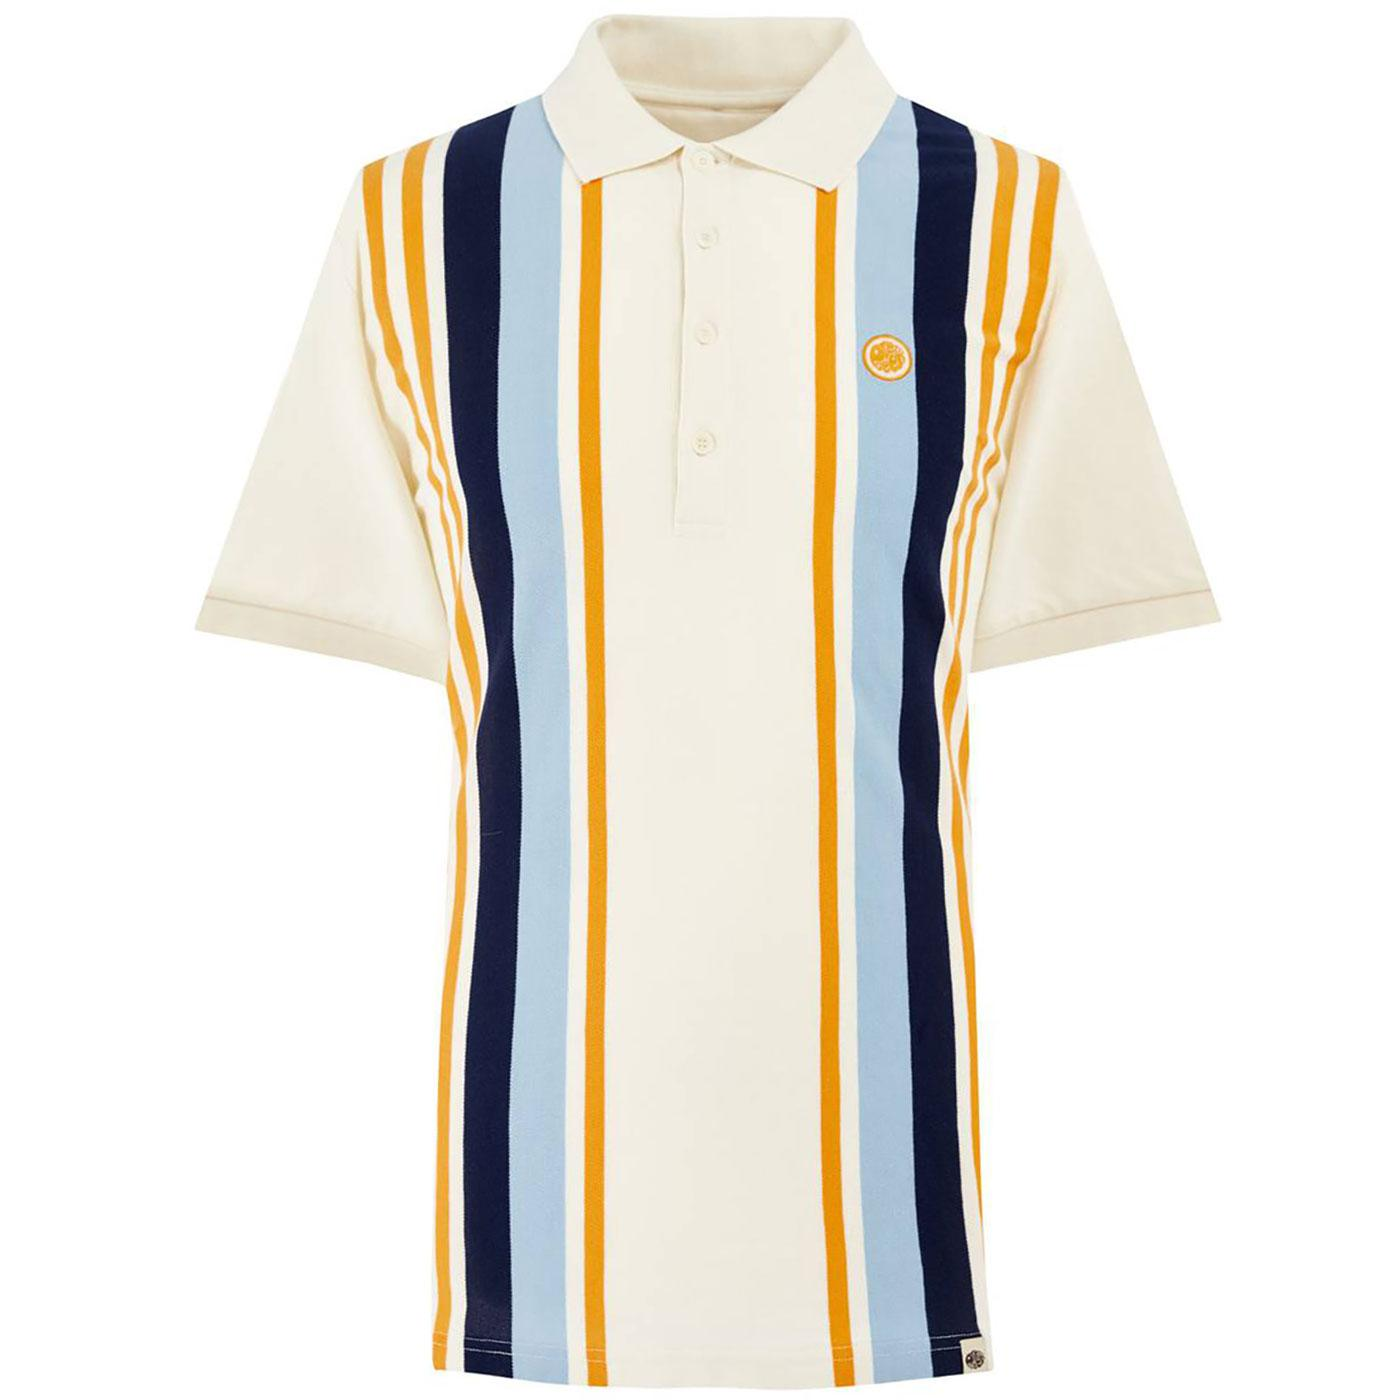 PRETTY GREEN Mod Vertical Engineered Stripe Polo